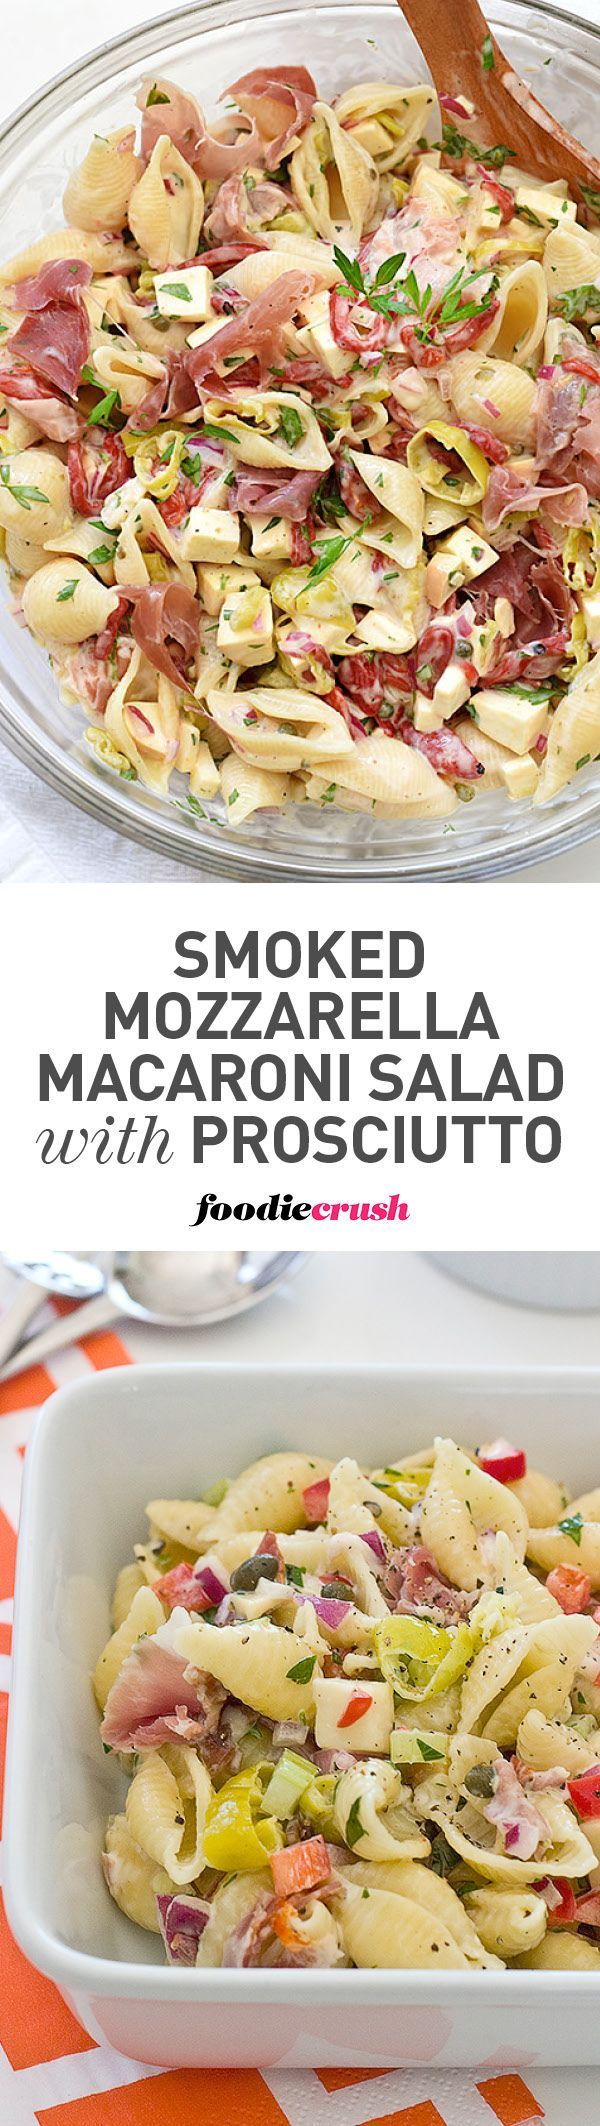 This tangy pasta salad mixes traditional macaroni salad with Italian flavors to create a new family favorite potluck salad. | http://foodiecrush.com #macaronisalad #potluck #salad